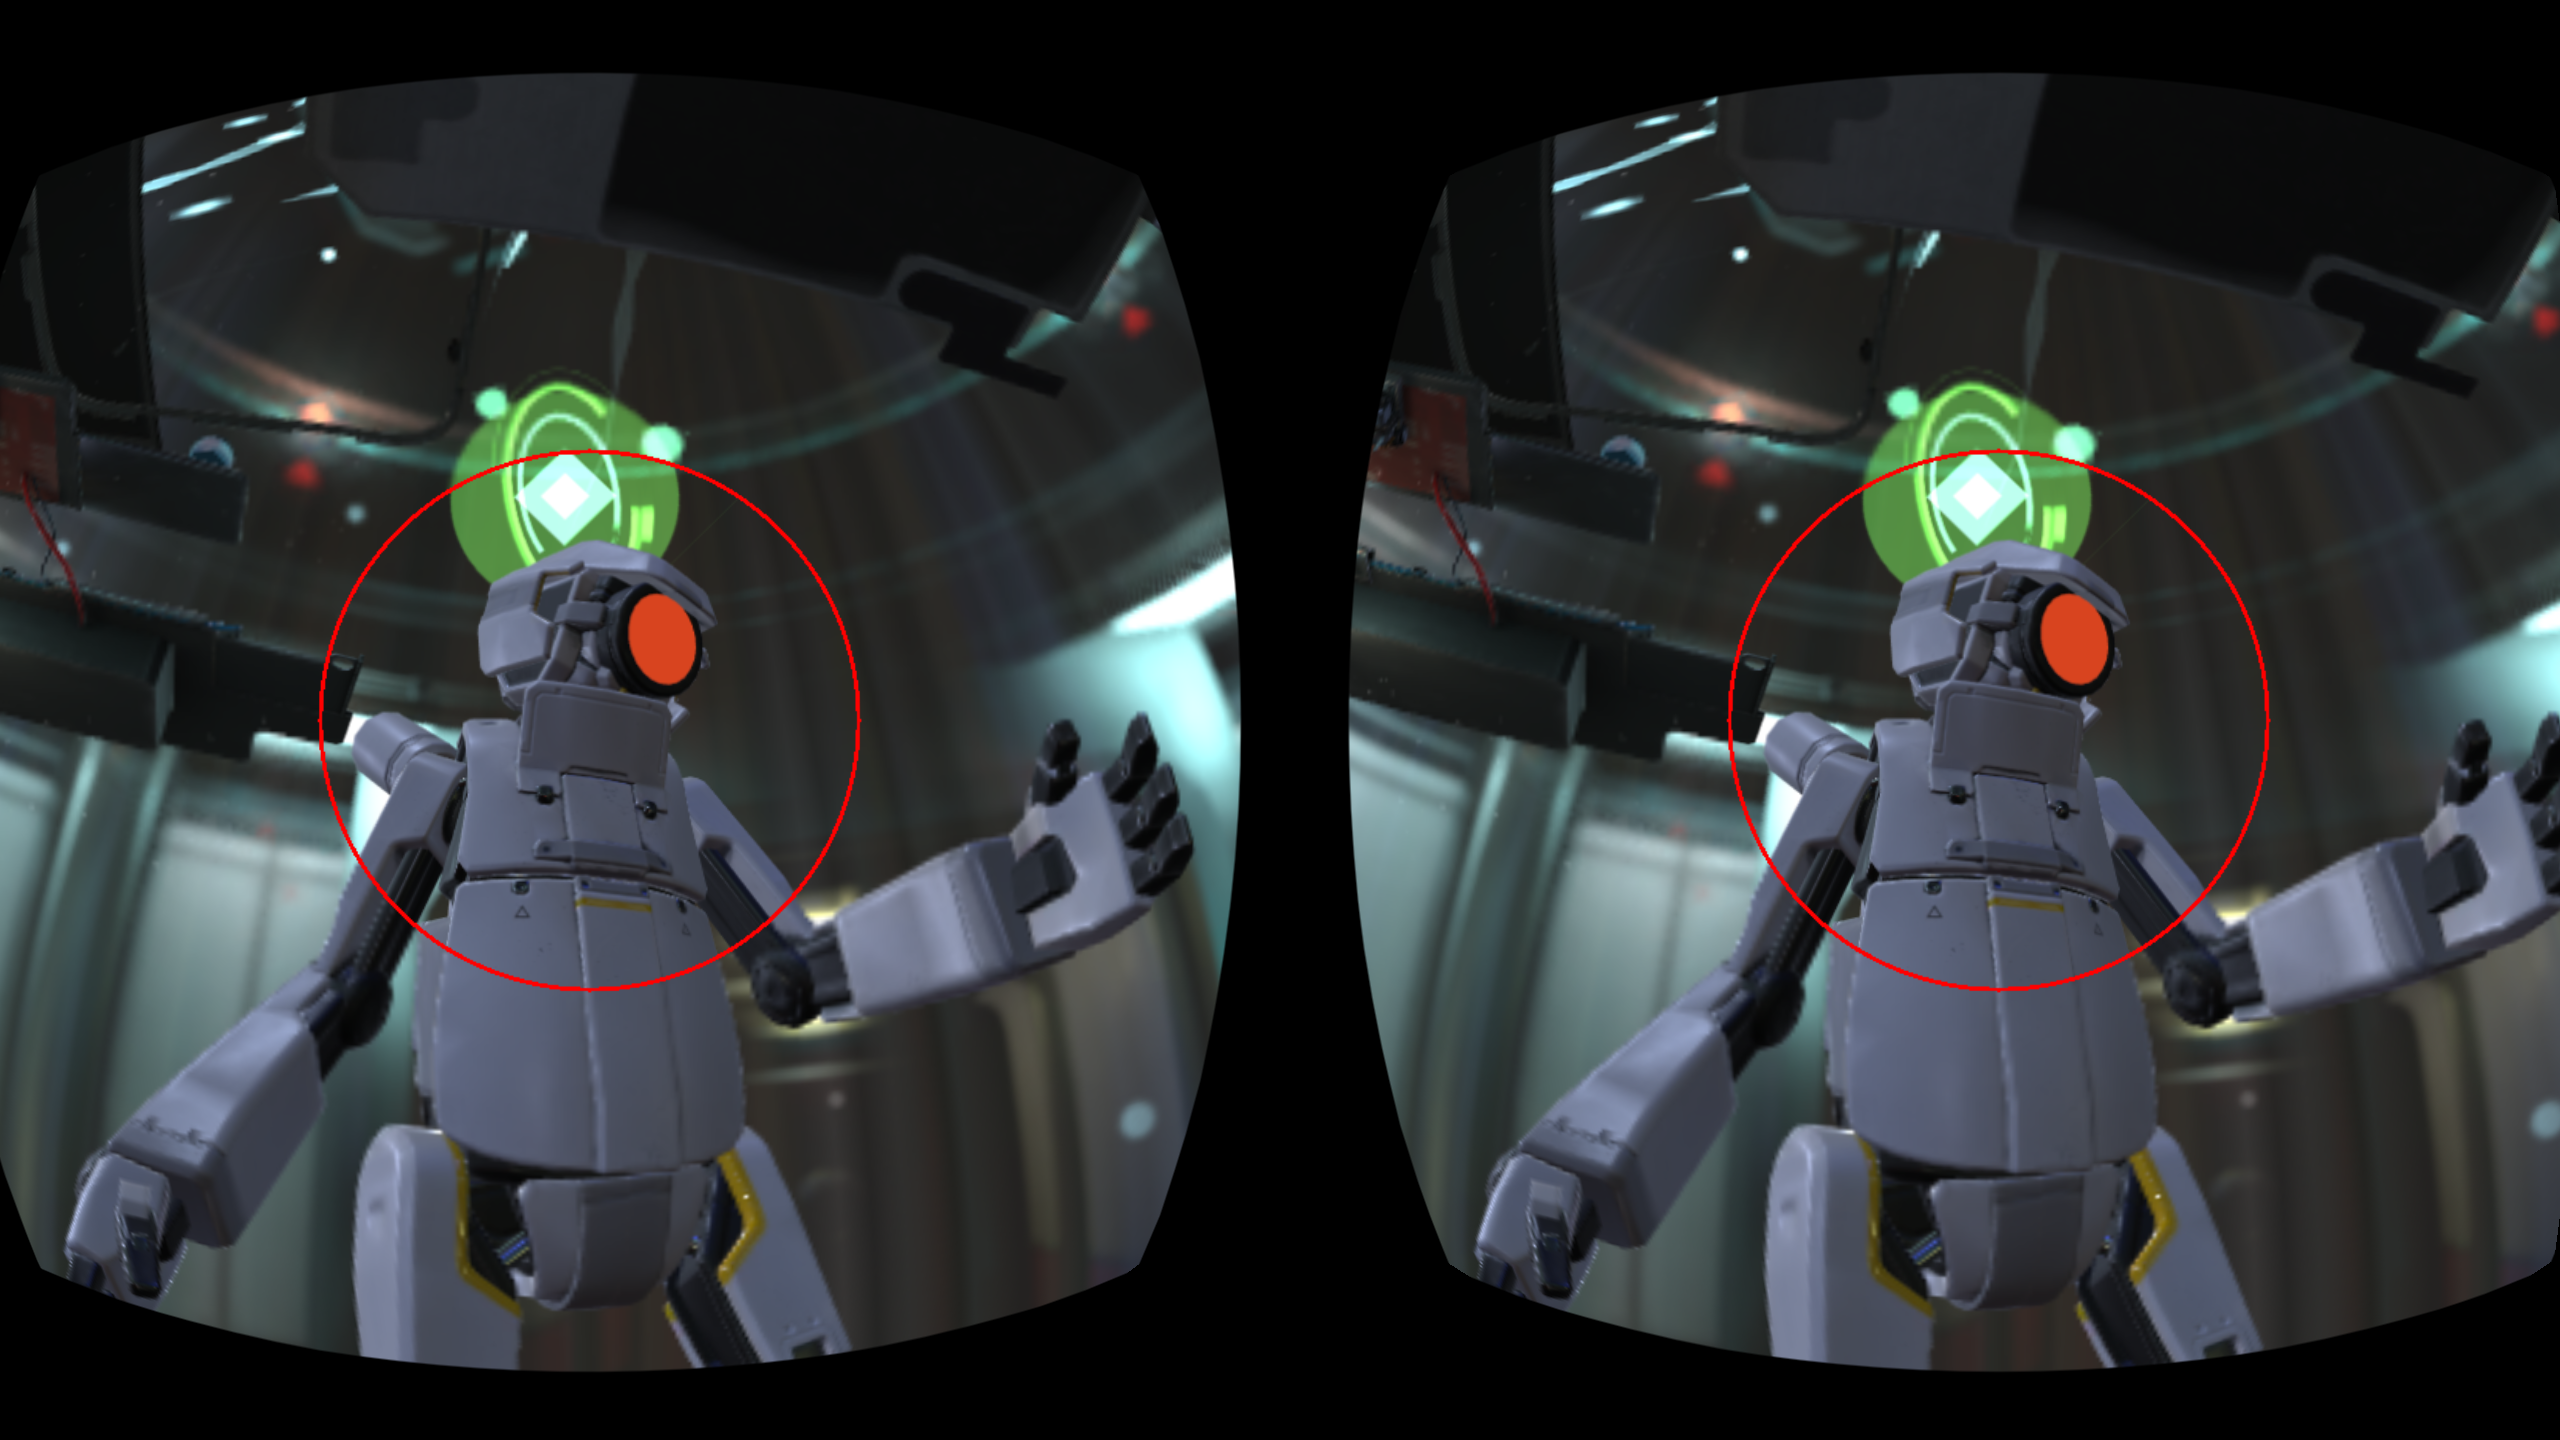 CircuitVR: Mobile Foveated Rendering with Multiview and Eye